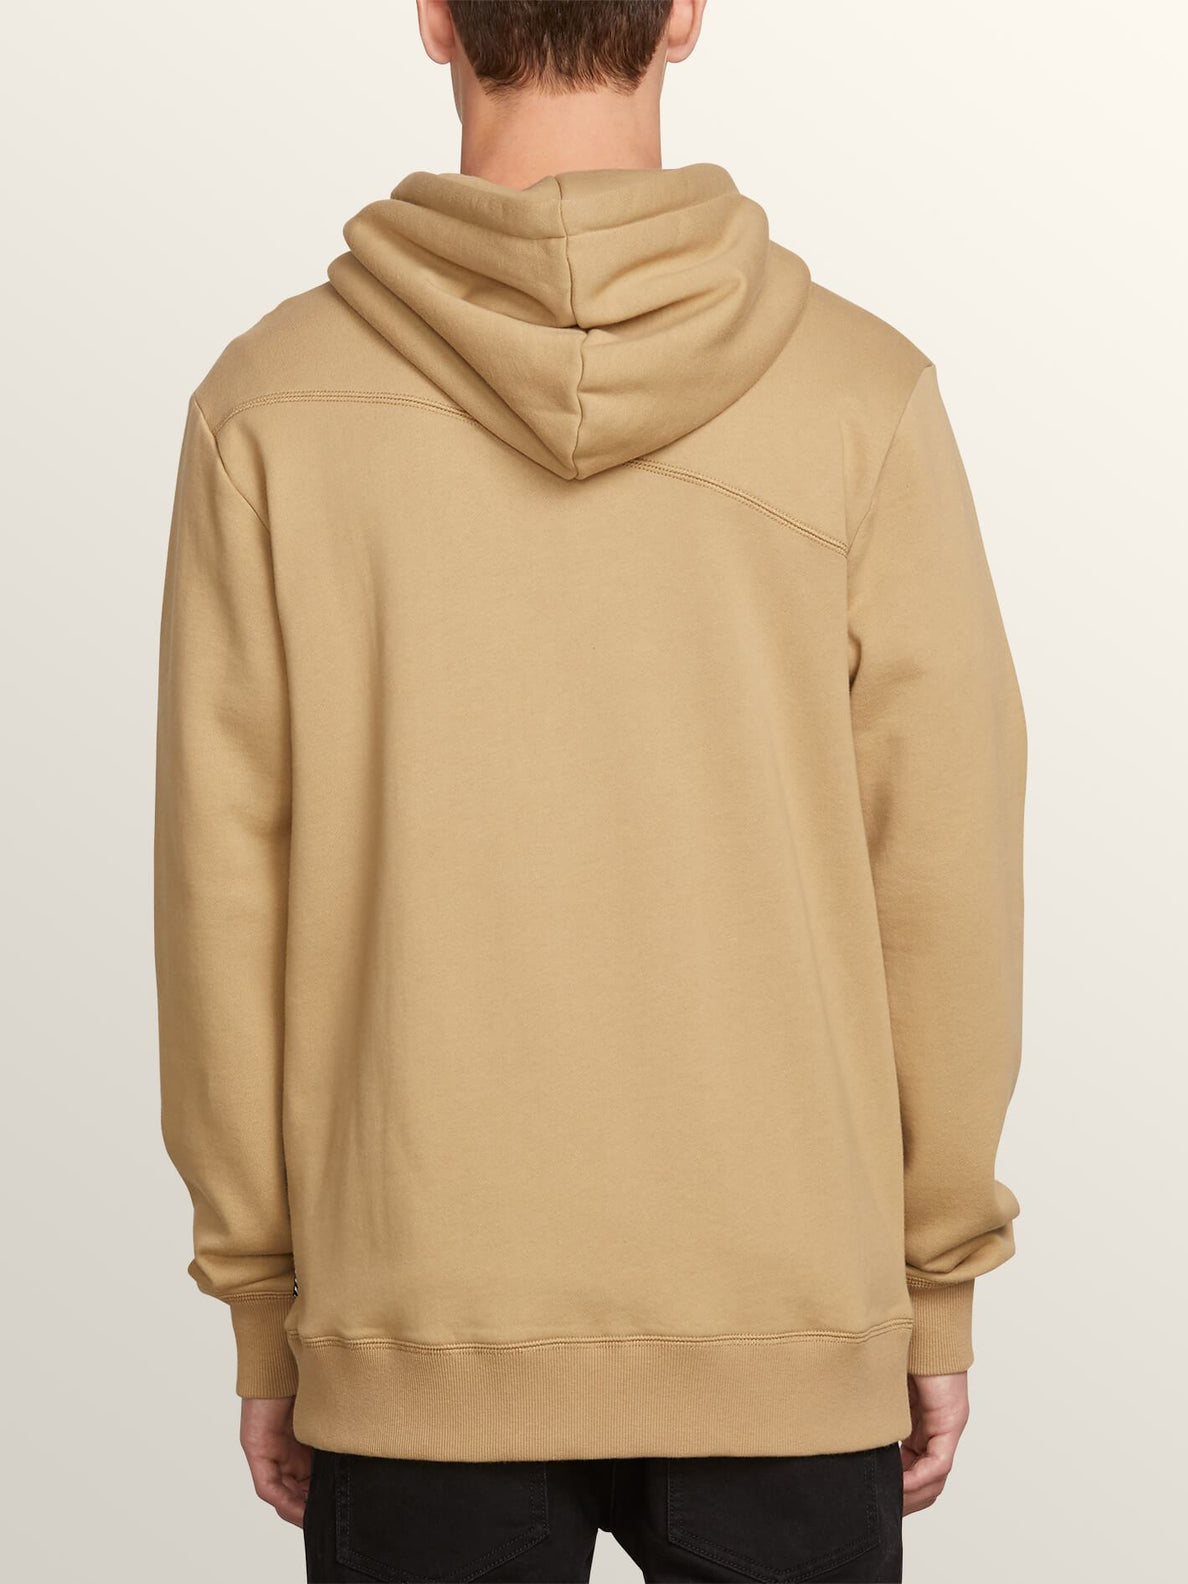 Sweat Sngl Stn Zip - Sand Brown